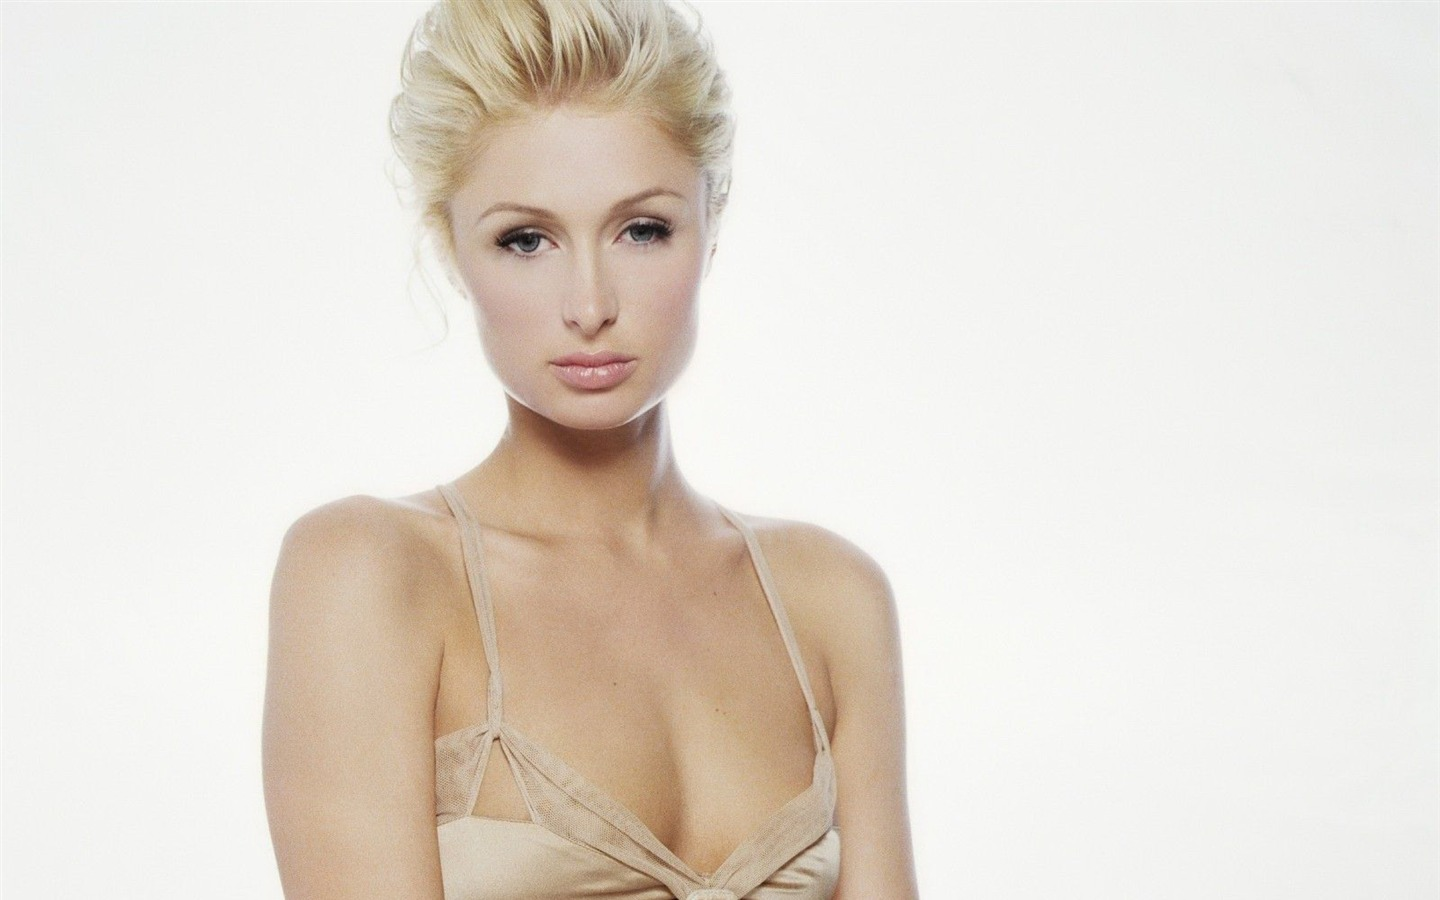 Paris Hilton #043 - 1440x900 Wallpapers Pictures Photos Images